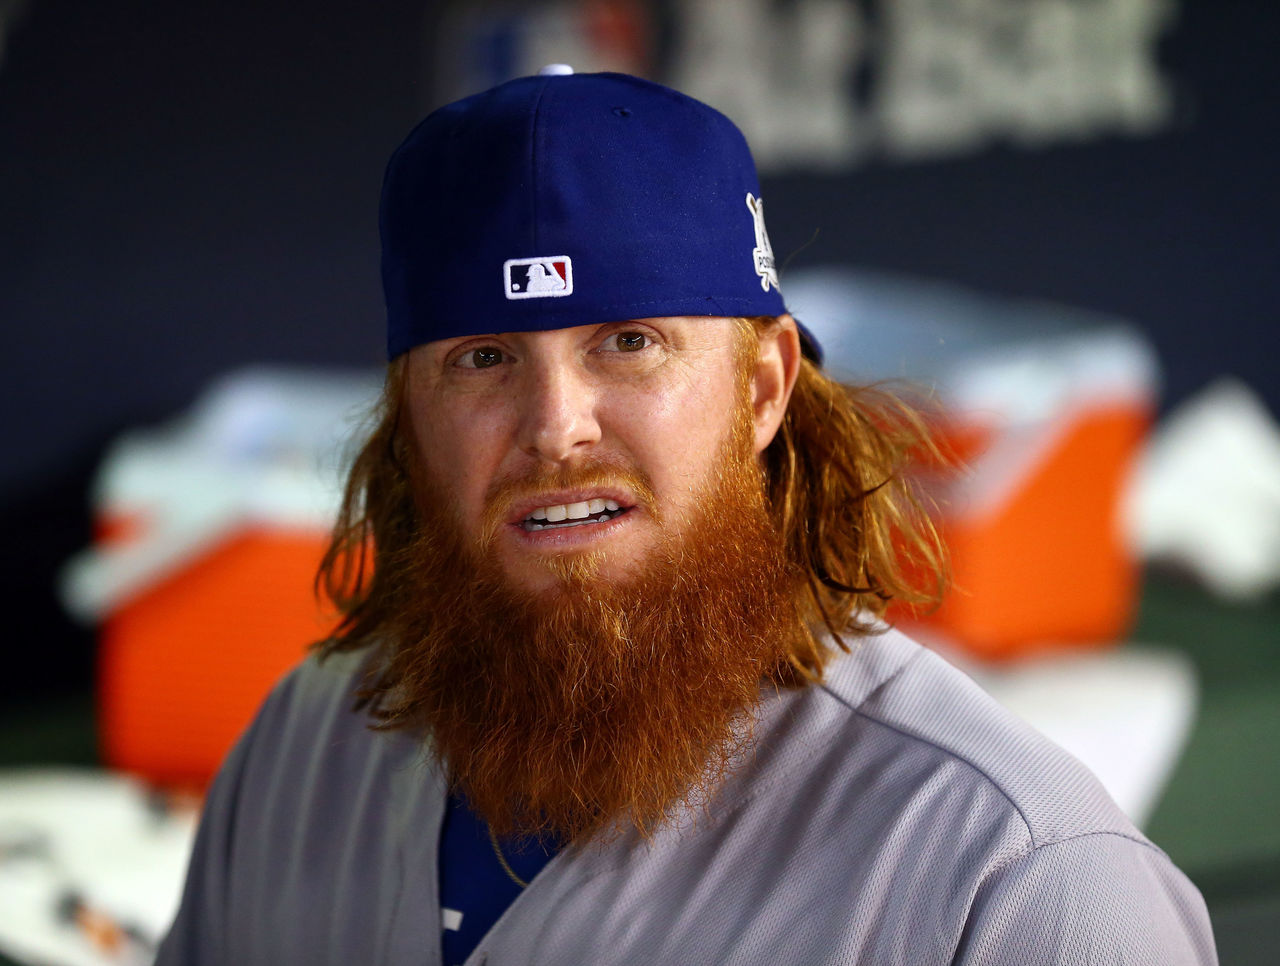 mlb dodgers beards turner justin beard